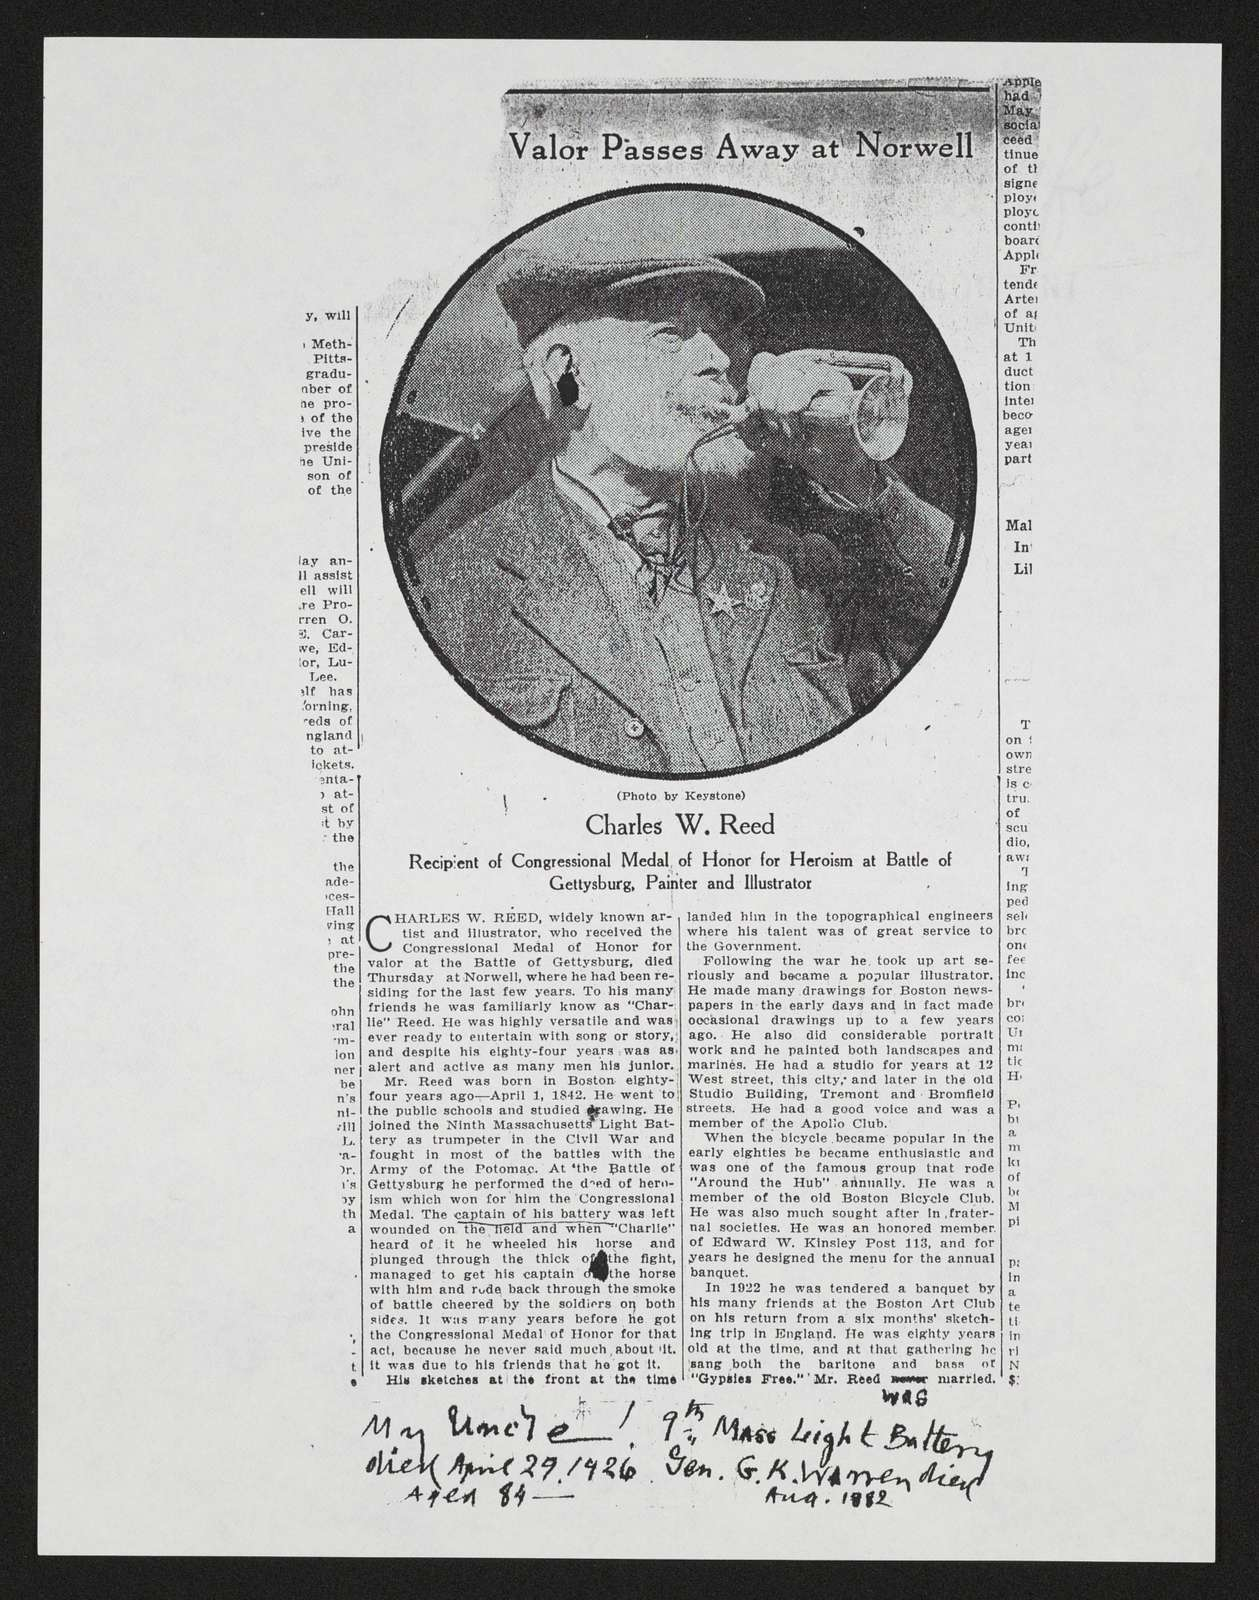 Charles Wellington Reed Papers: Clippings,  1863-1926, undated